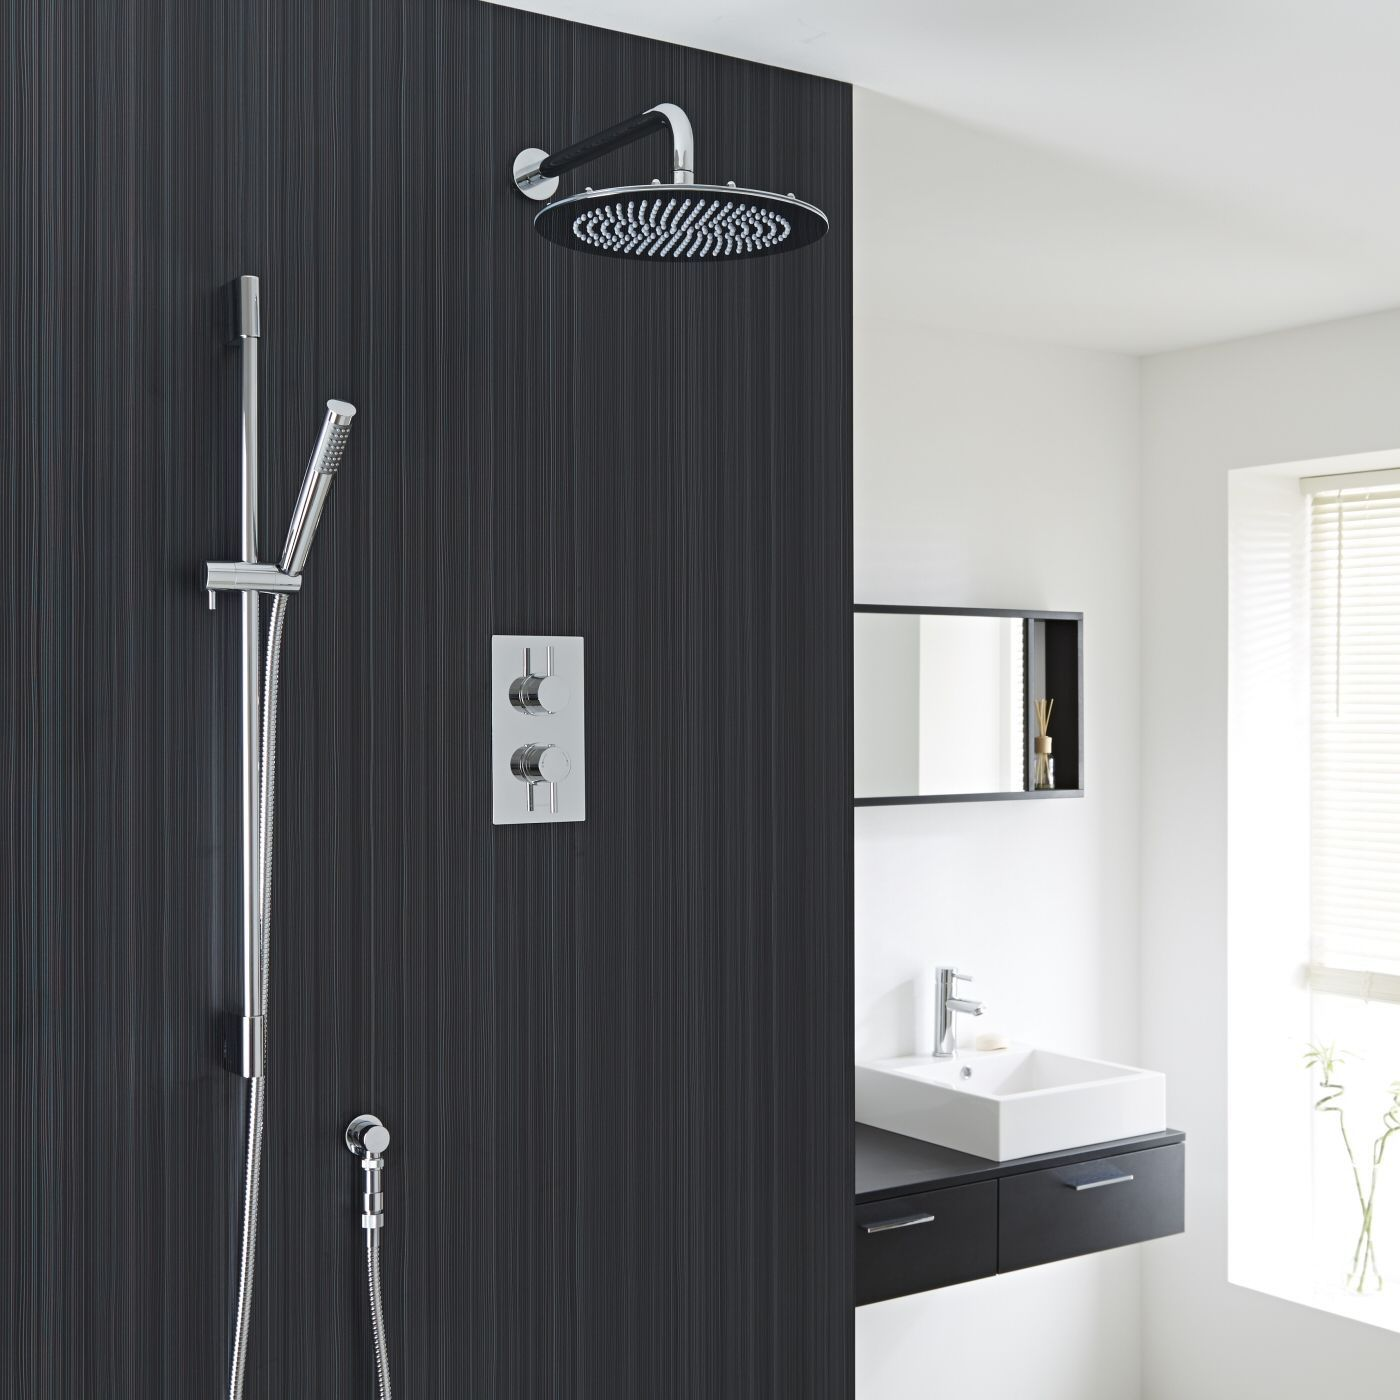 Valquest Thermostatic Shower Valve With Divertor 2 Outlets, 12 ...